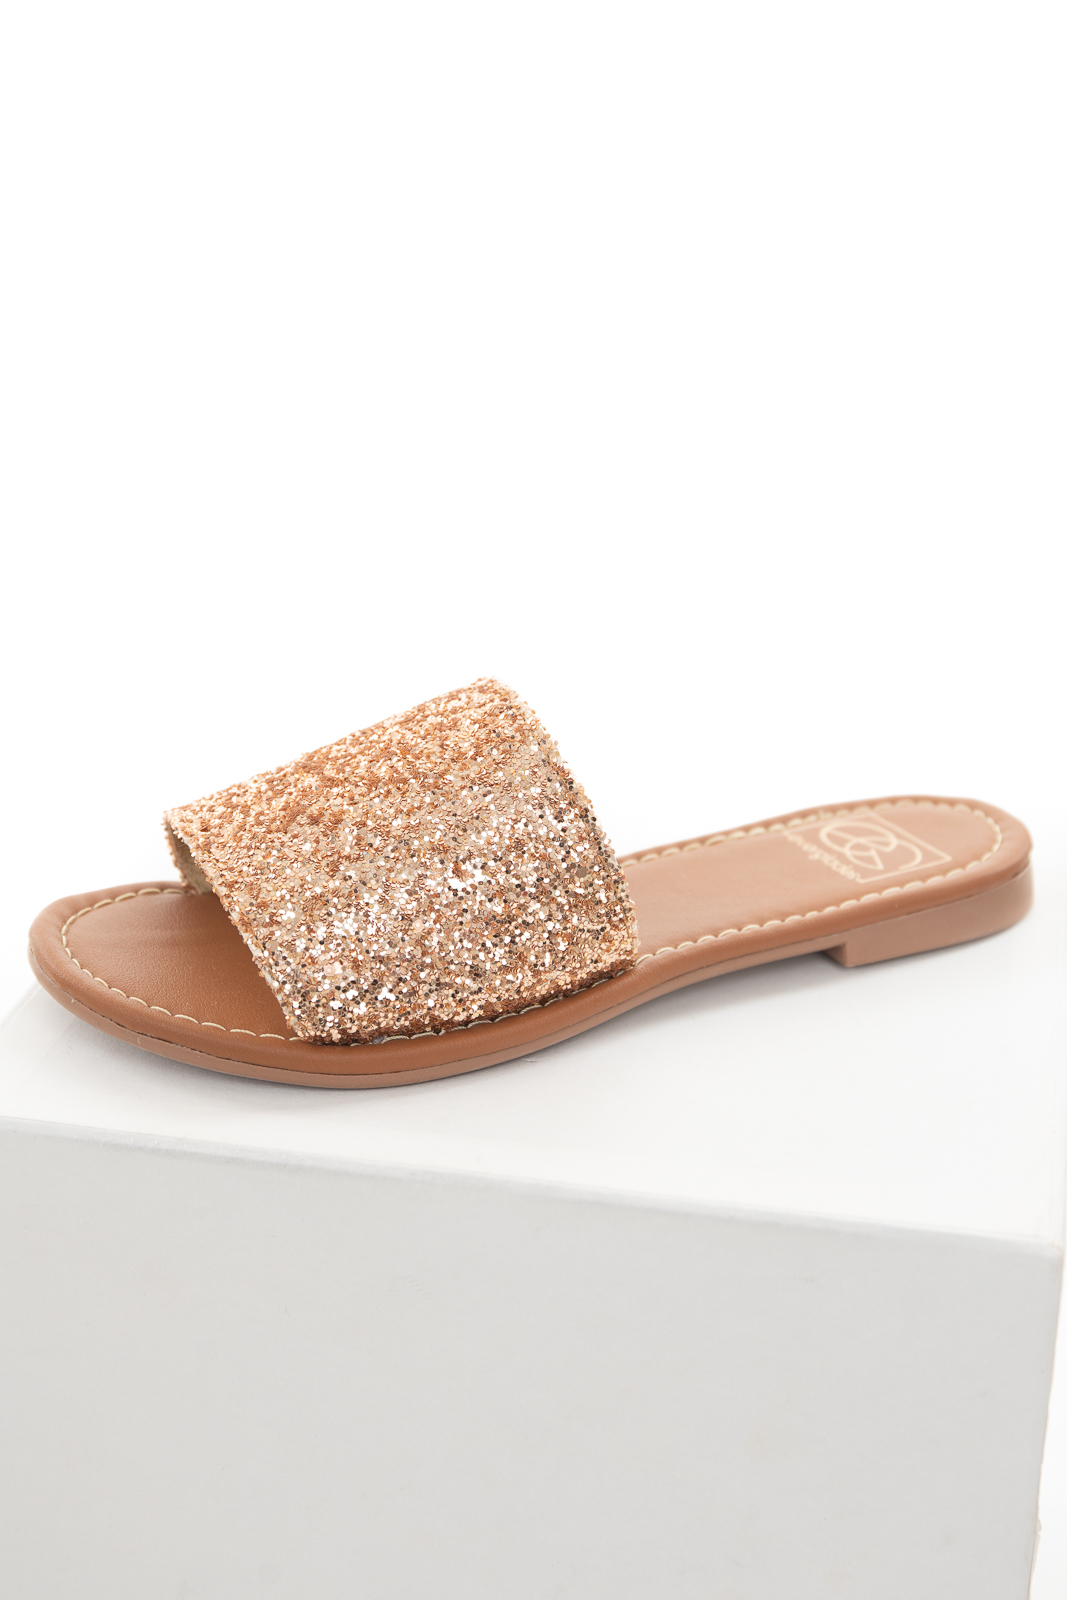 Rose Gold Glitter Large Strap Slip On Sandals with Open Toe